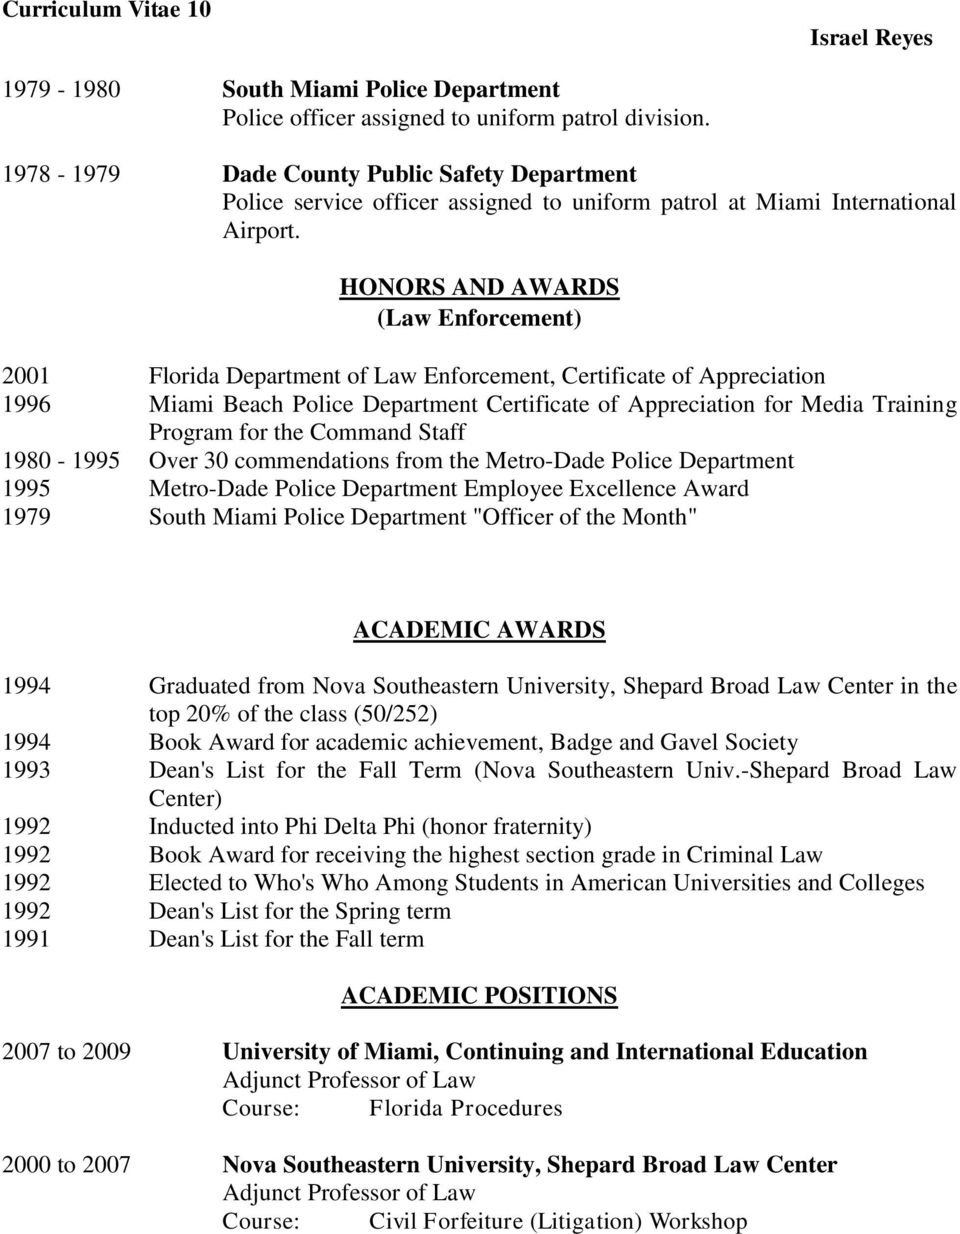 HONORS AND AWARDS (Law Enforcement) 2001 Florida Department of Law Enforcement, Certificate of Appreciation 1996 Miami Beach Police Department Certificate of Appreciation for Media Training Program